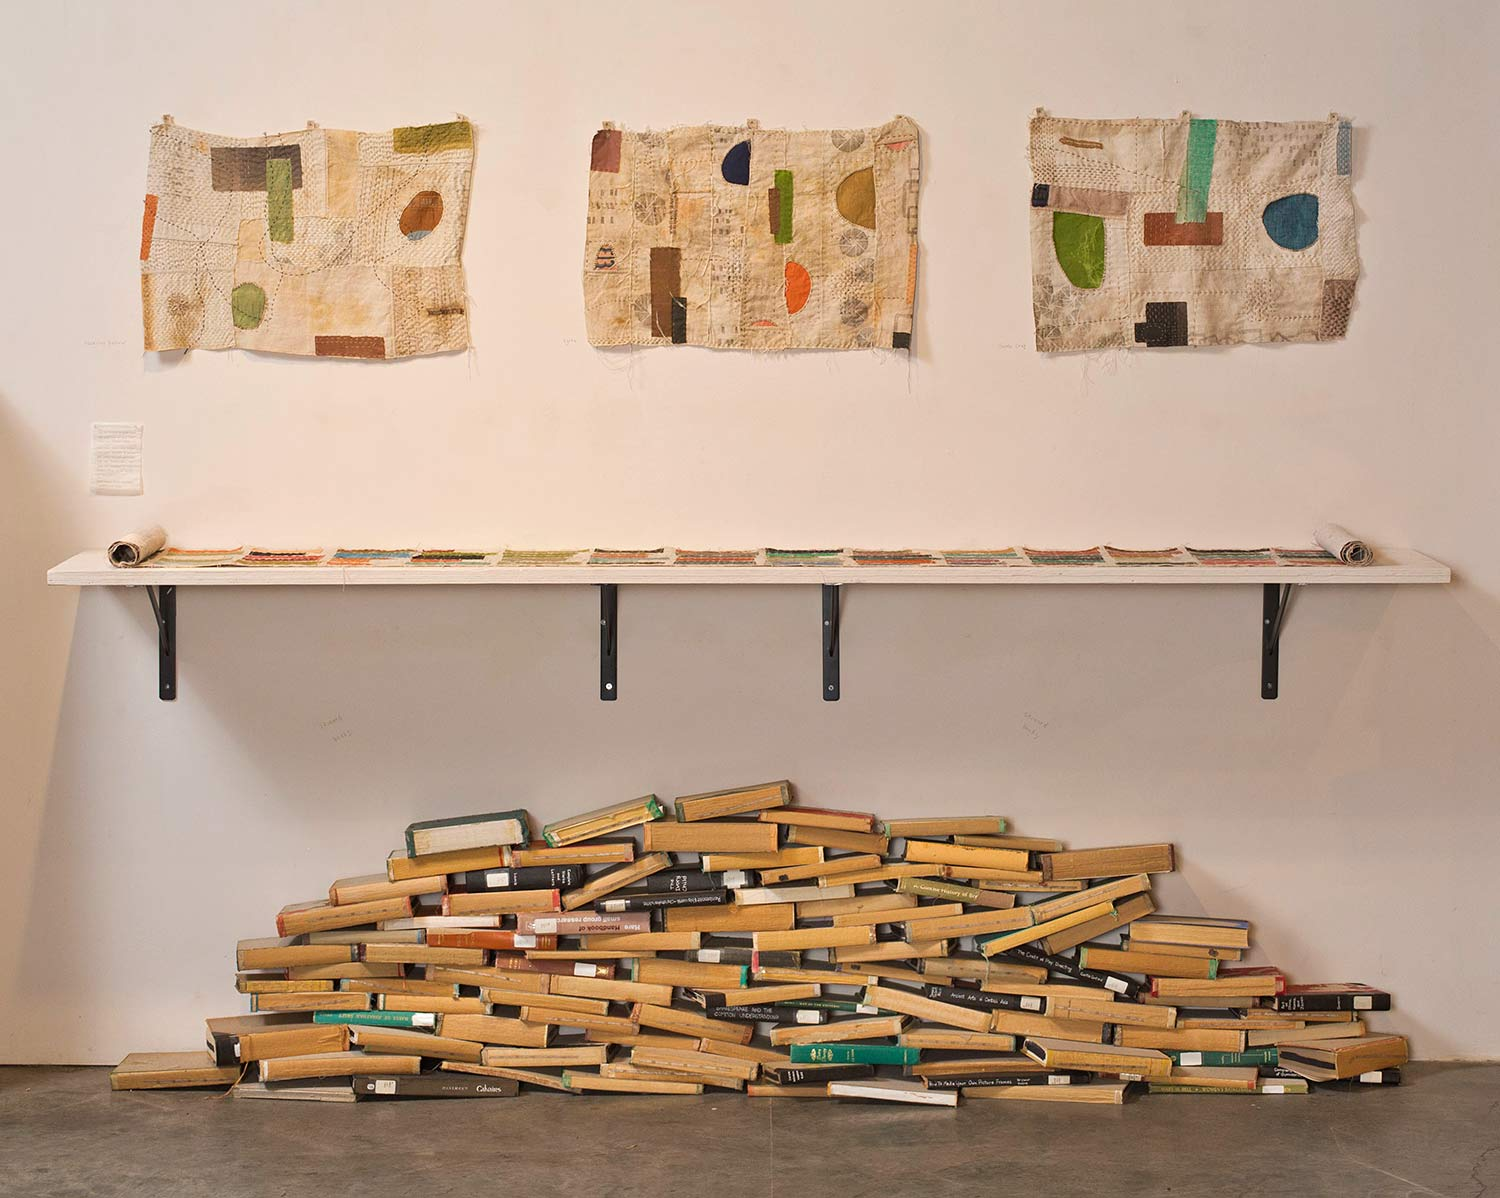 KEEP: Modern Library installation at R. Blitzer Gallery, 2015